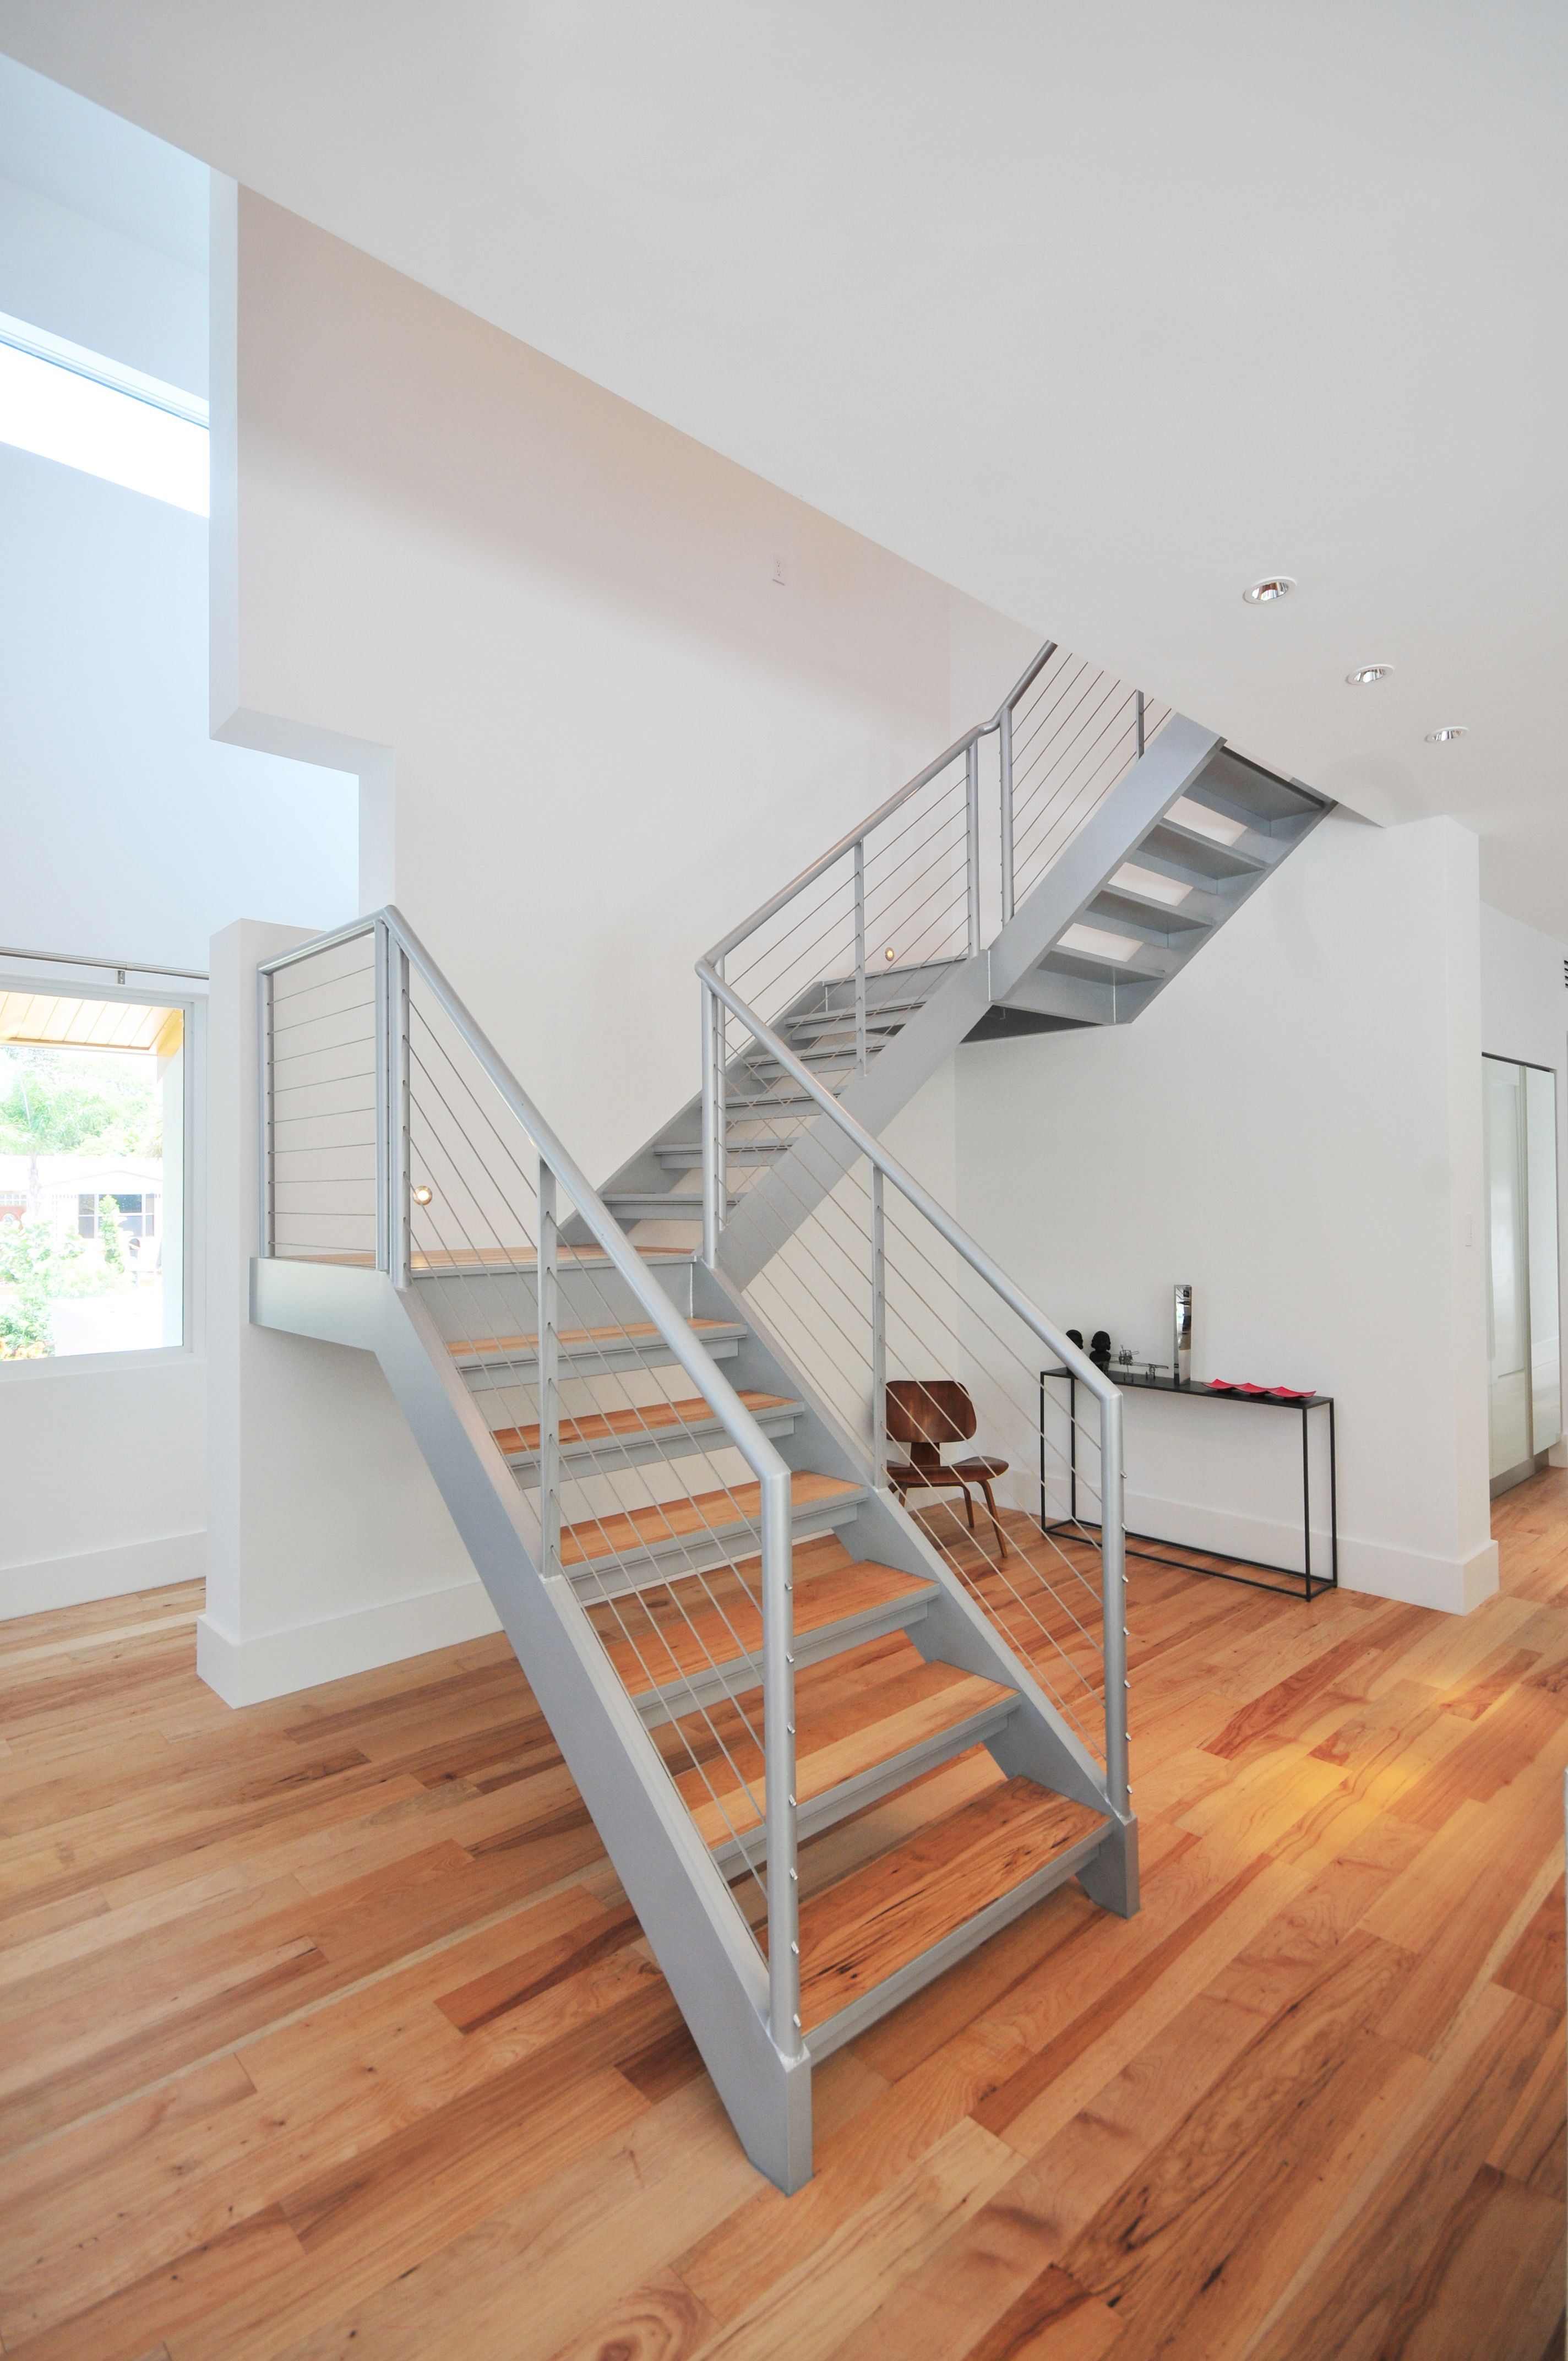 Aluminum Stairs U0026 Stainless Steel Cable Railing Fabricated And Installed By  Mulletu0027s Aluminum